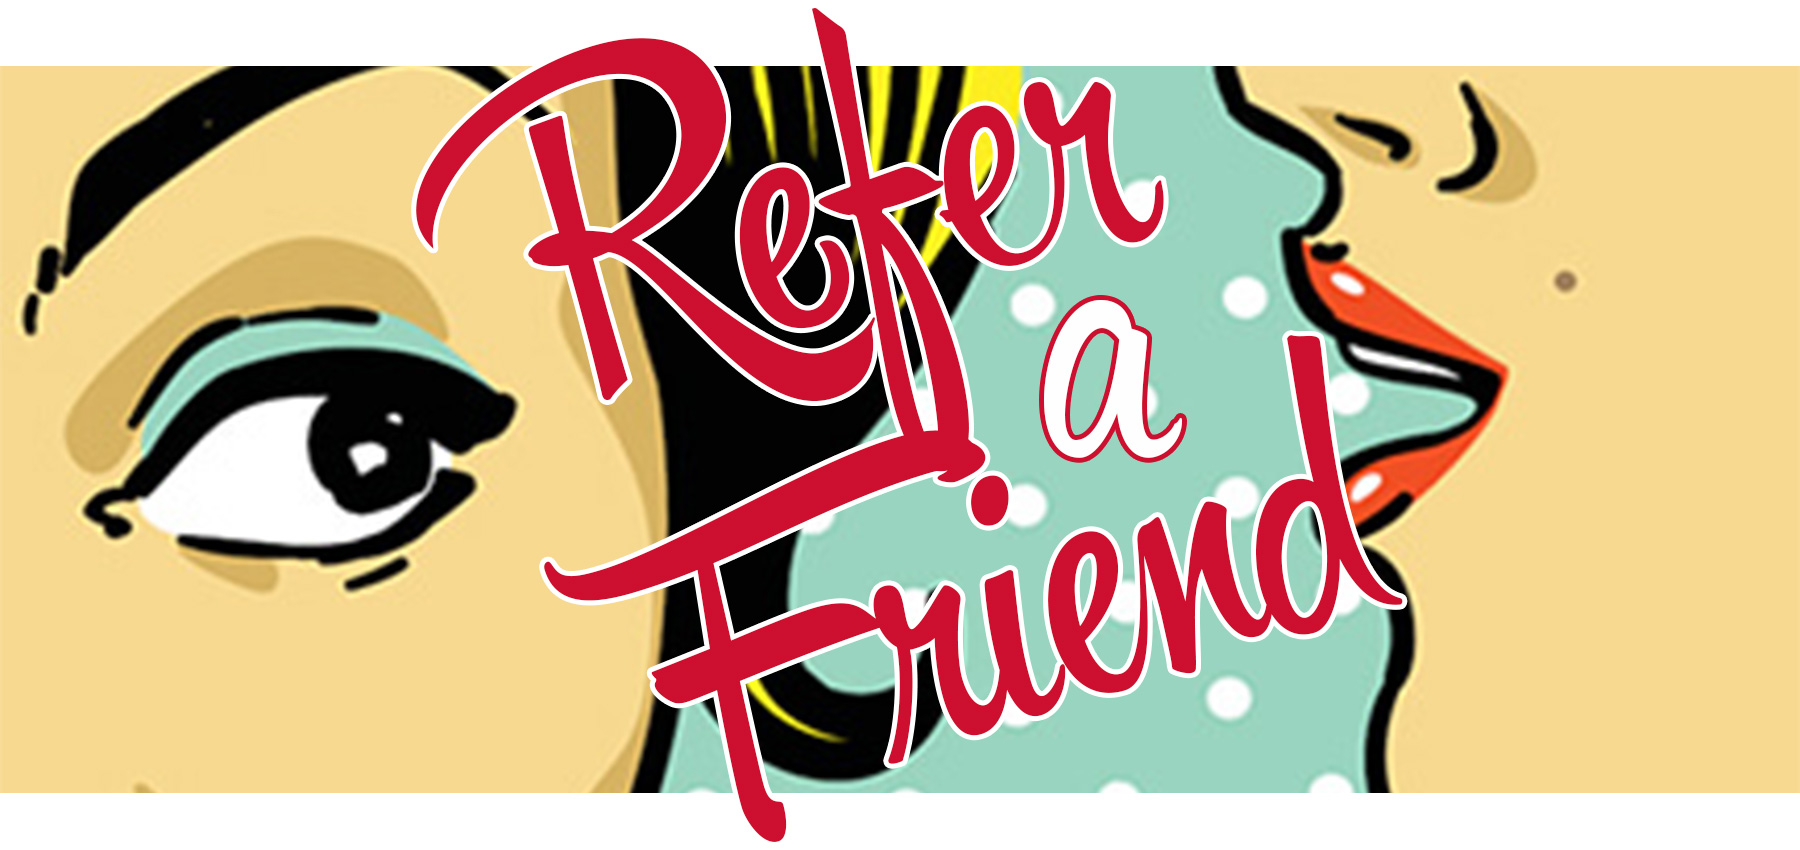 Refer-a-Friend-Website-Banner-white-boarder